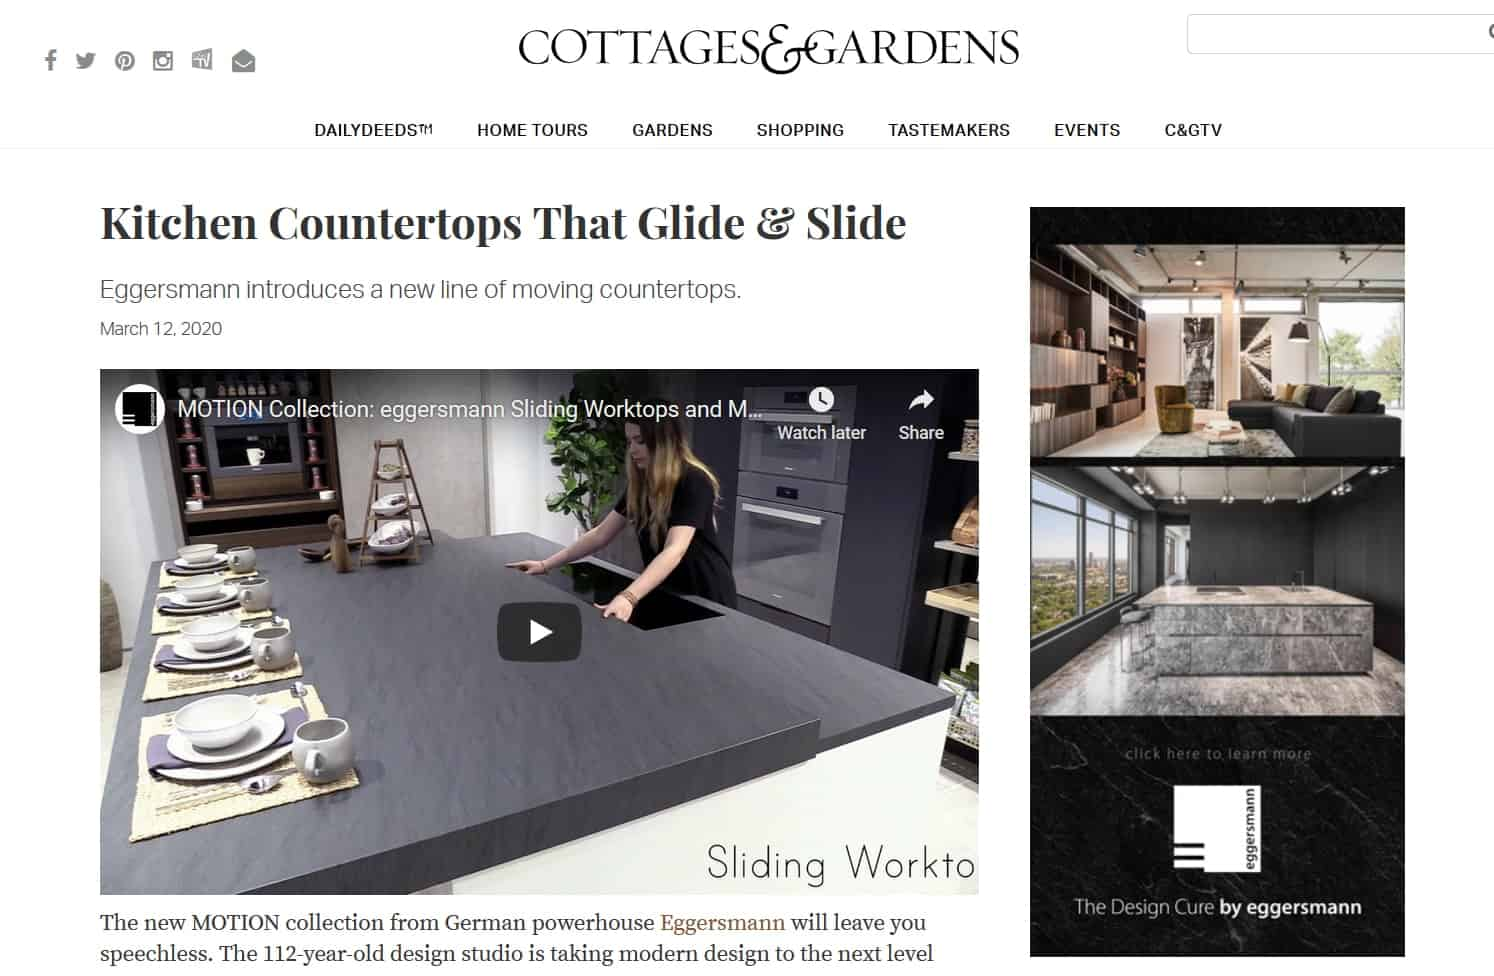 eggersmann Moving Countertops Featured in Cottages & Gardens